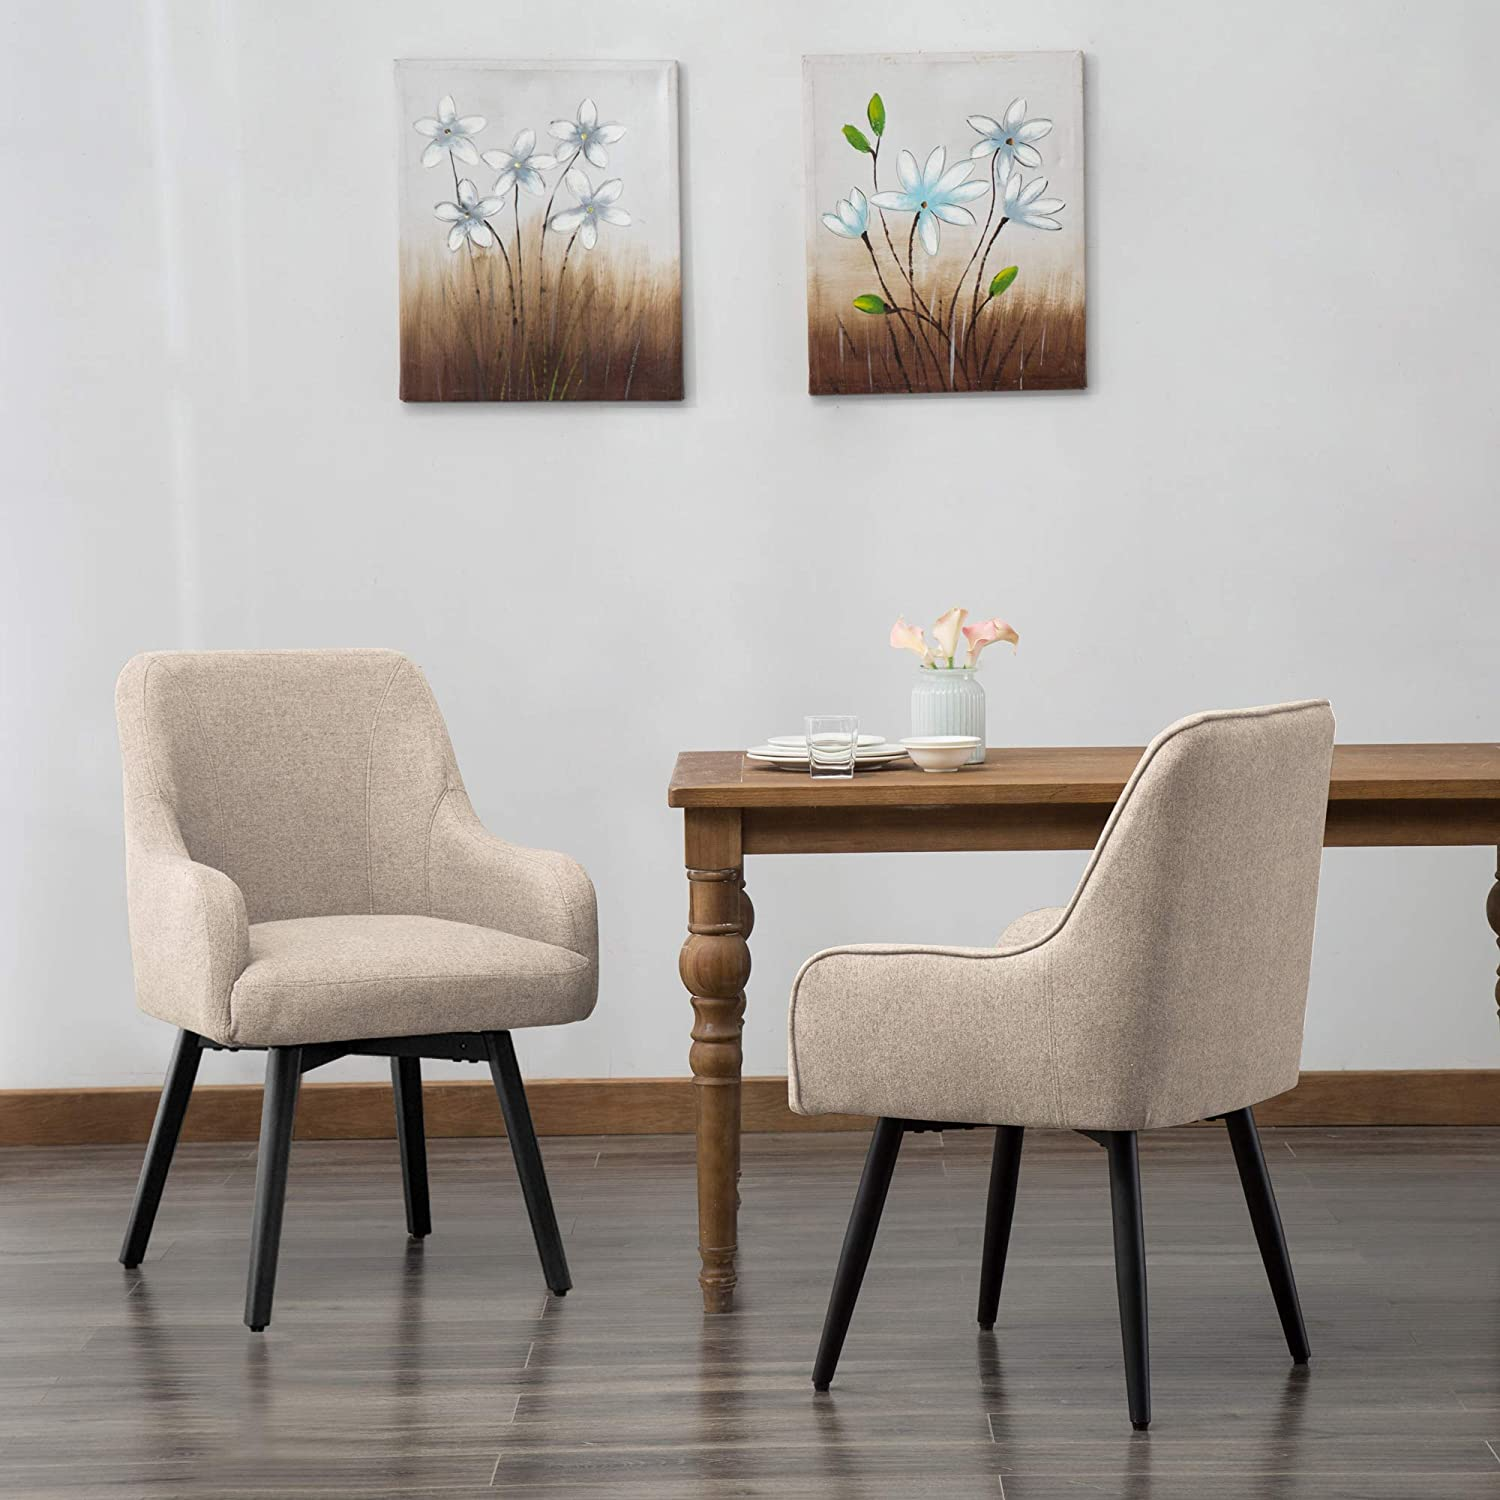 Swivel Dining Chairs Set of 8 Upholstered Living Room Chairs Desk Office  Arm Chair